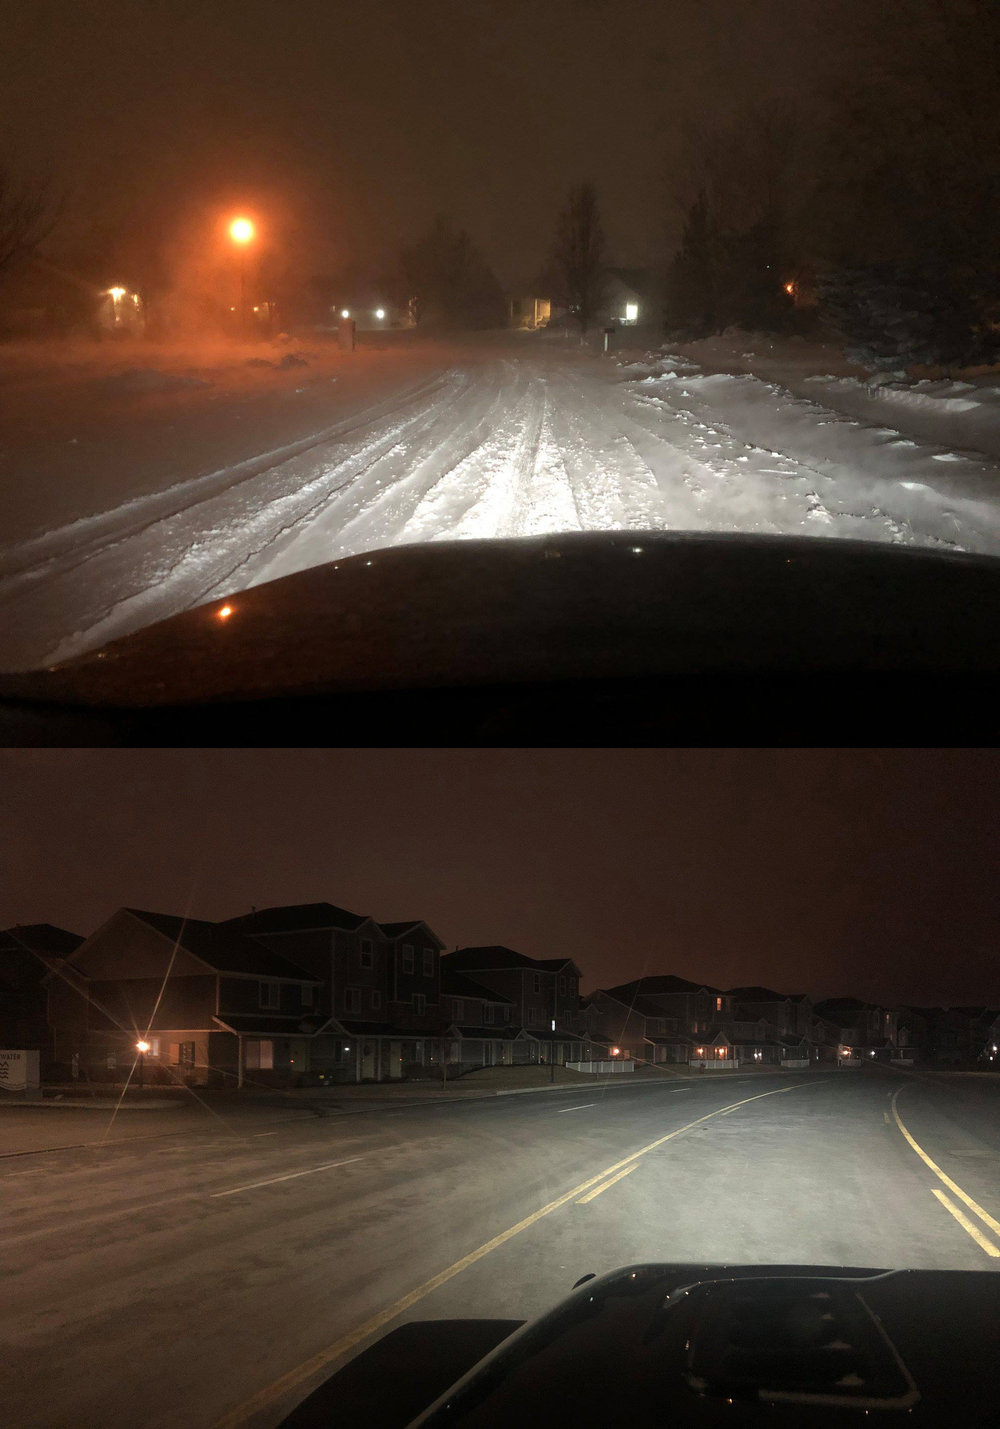 A SPOTTER TAKES PICTURES OF ROAD CONDITIONS IN HIGHLAND AND VINEYARD EARLY MONDAY.  (PHOTO COURTESY ASD)